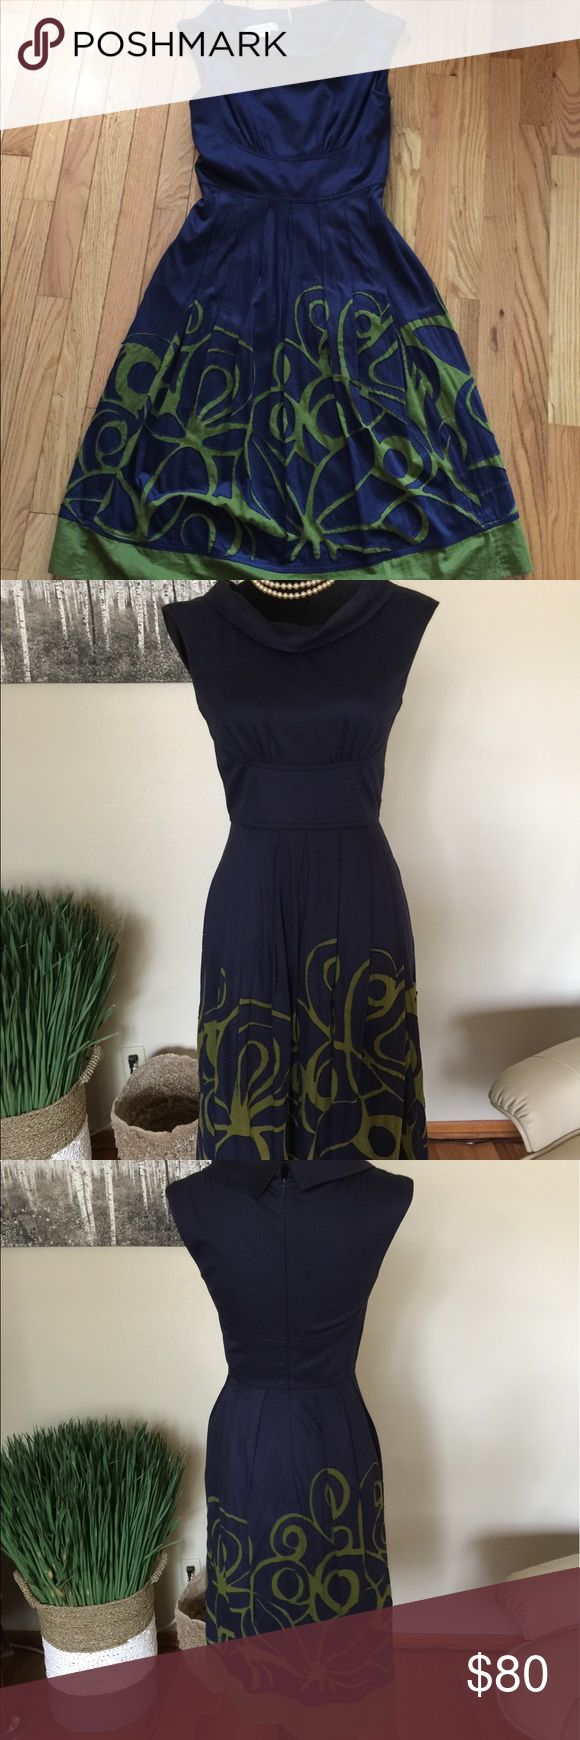 """Kay Unger Dress Lovely Navy and Green dress by Kay Unger. Design has a vintage look to it. Love the pop of green in the skirt. Sleeveless and fully lined. Pit to pit measures 15"""". Shoulder to hem measures 41"""". Color is Navy/Green. Size is 4. EUC. Kay Unger Dresses"""